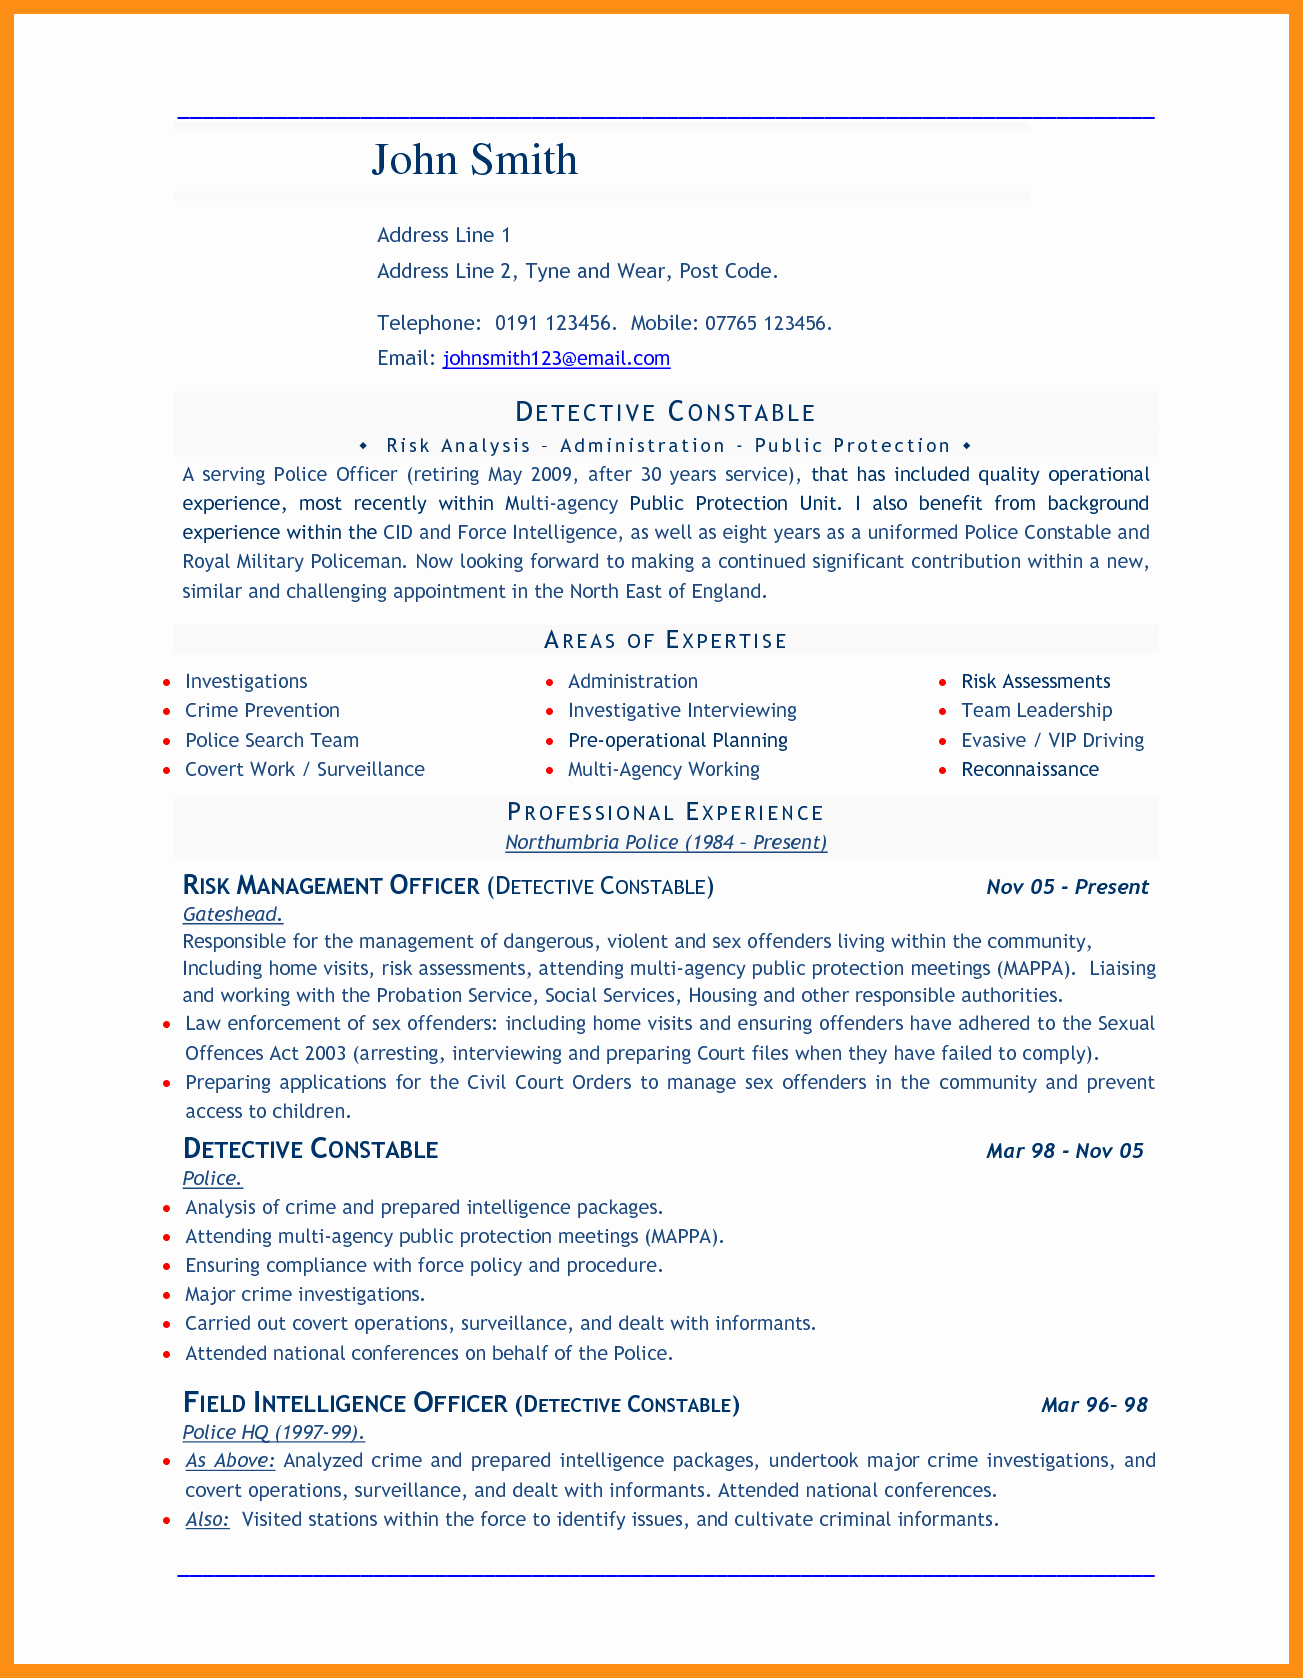 Resume Template Microsoft Word 2003 Elegant Sample Word Document Templates